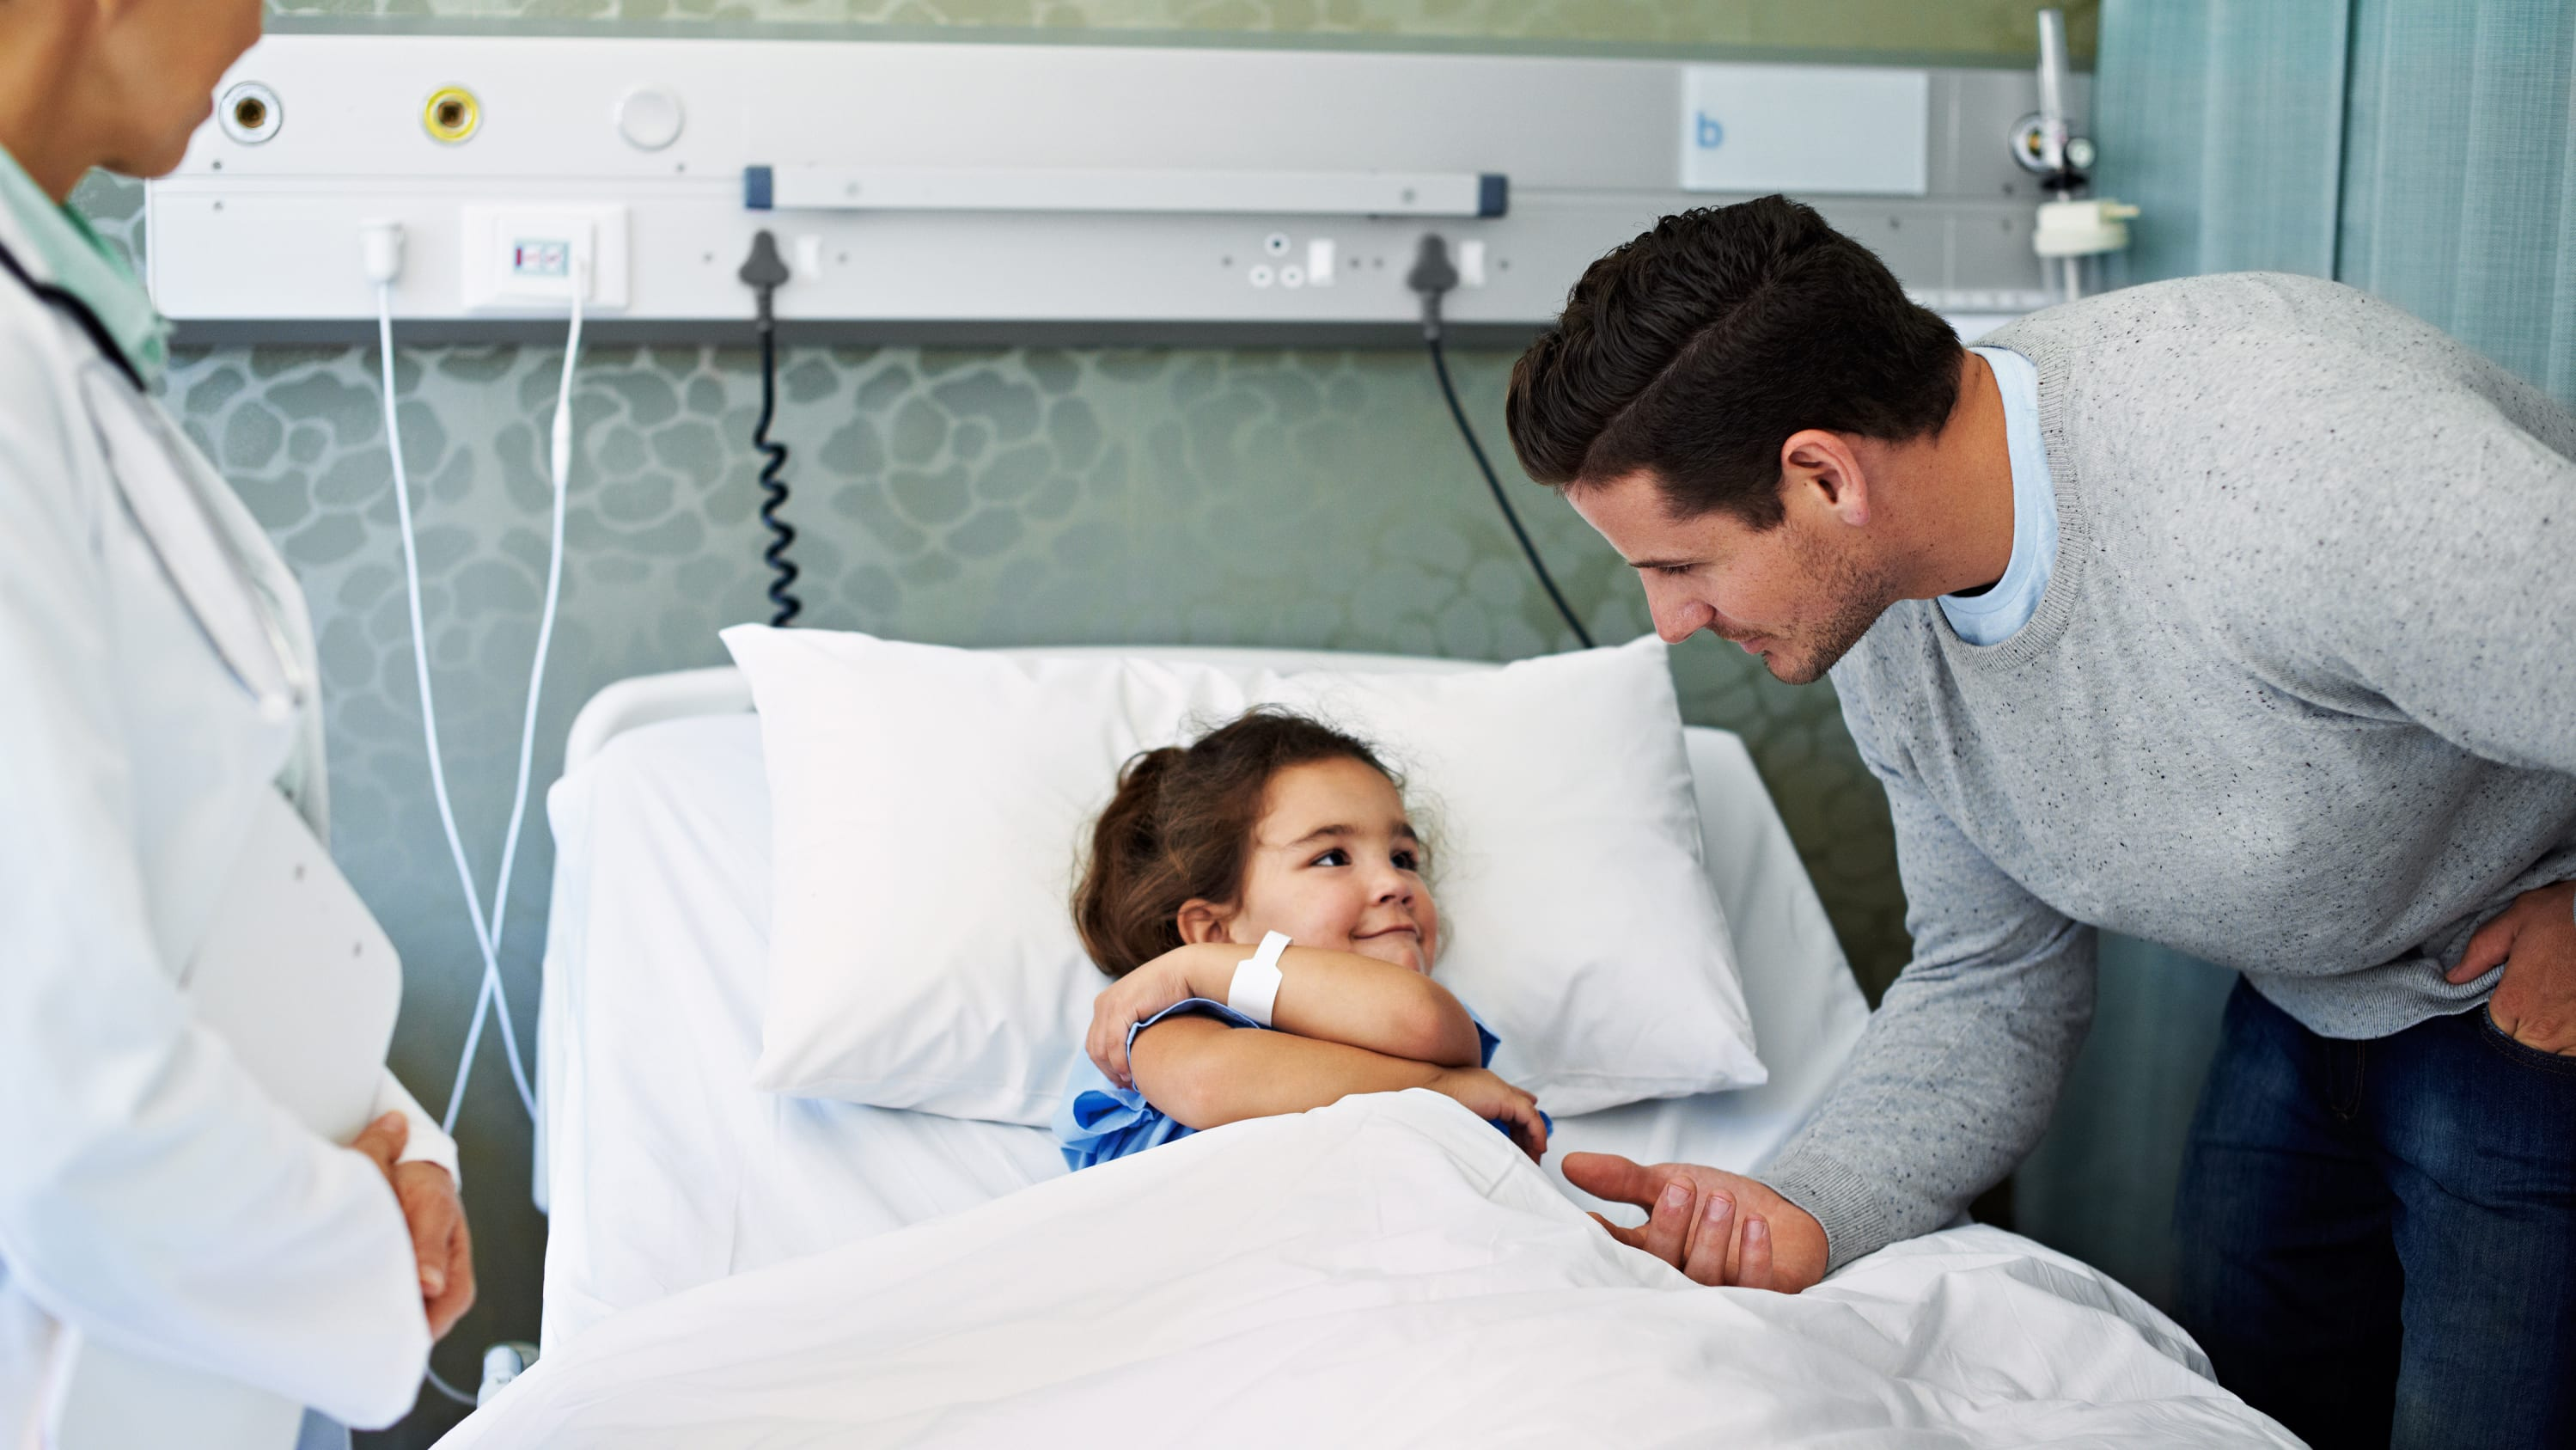 A child who had surgery for a congenital heart defect recovers in a hospital room.